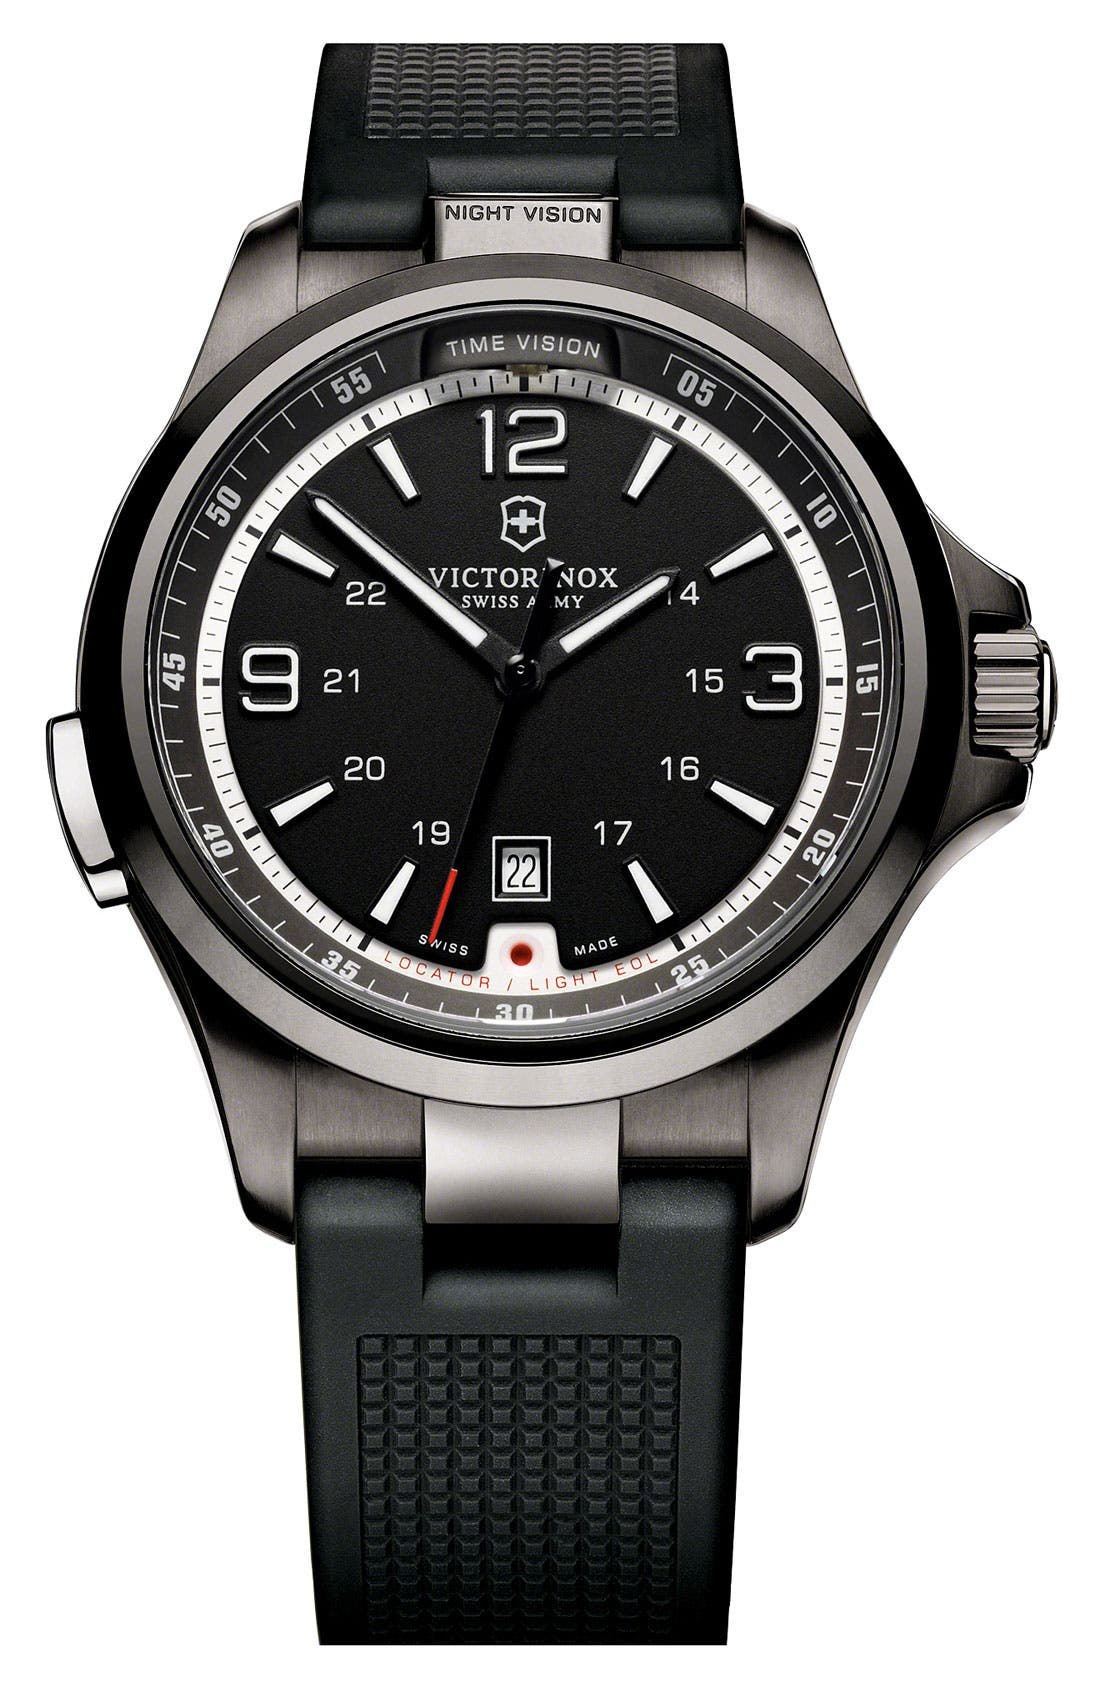 Main Image - Victorinox Swiss Army® 'Night Vision' Rubber Strap Watch, 42mm